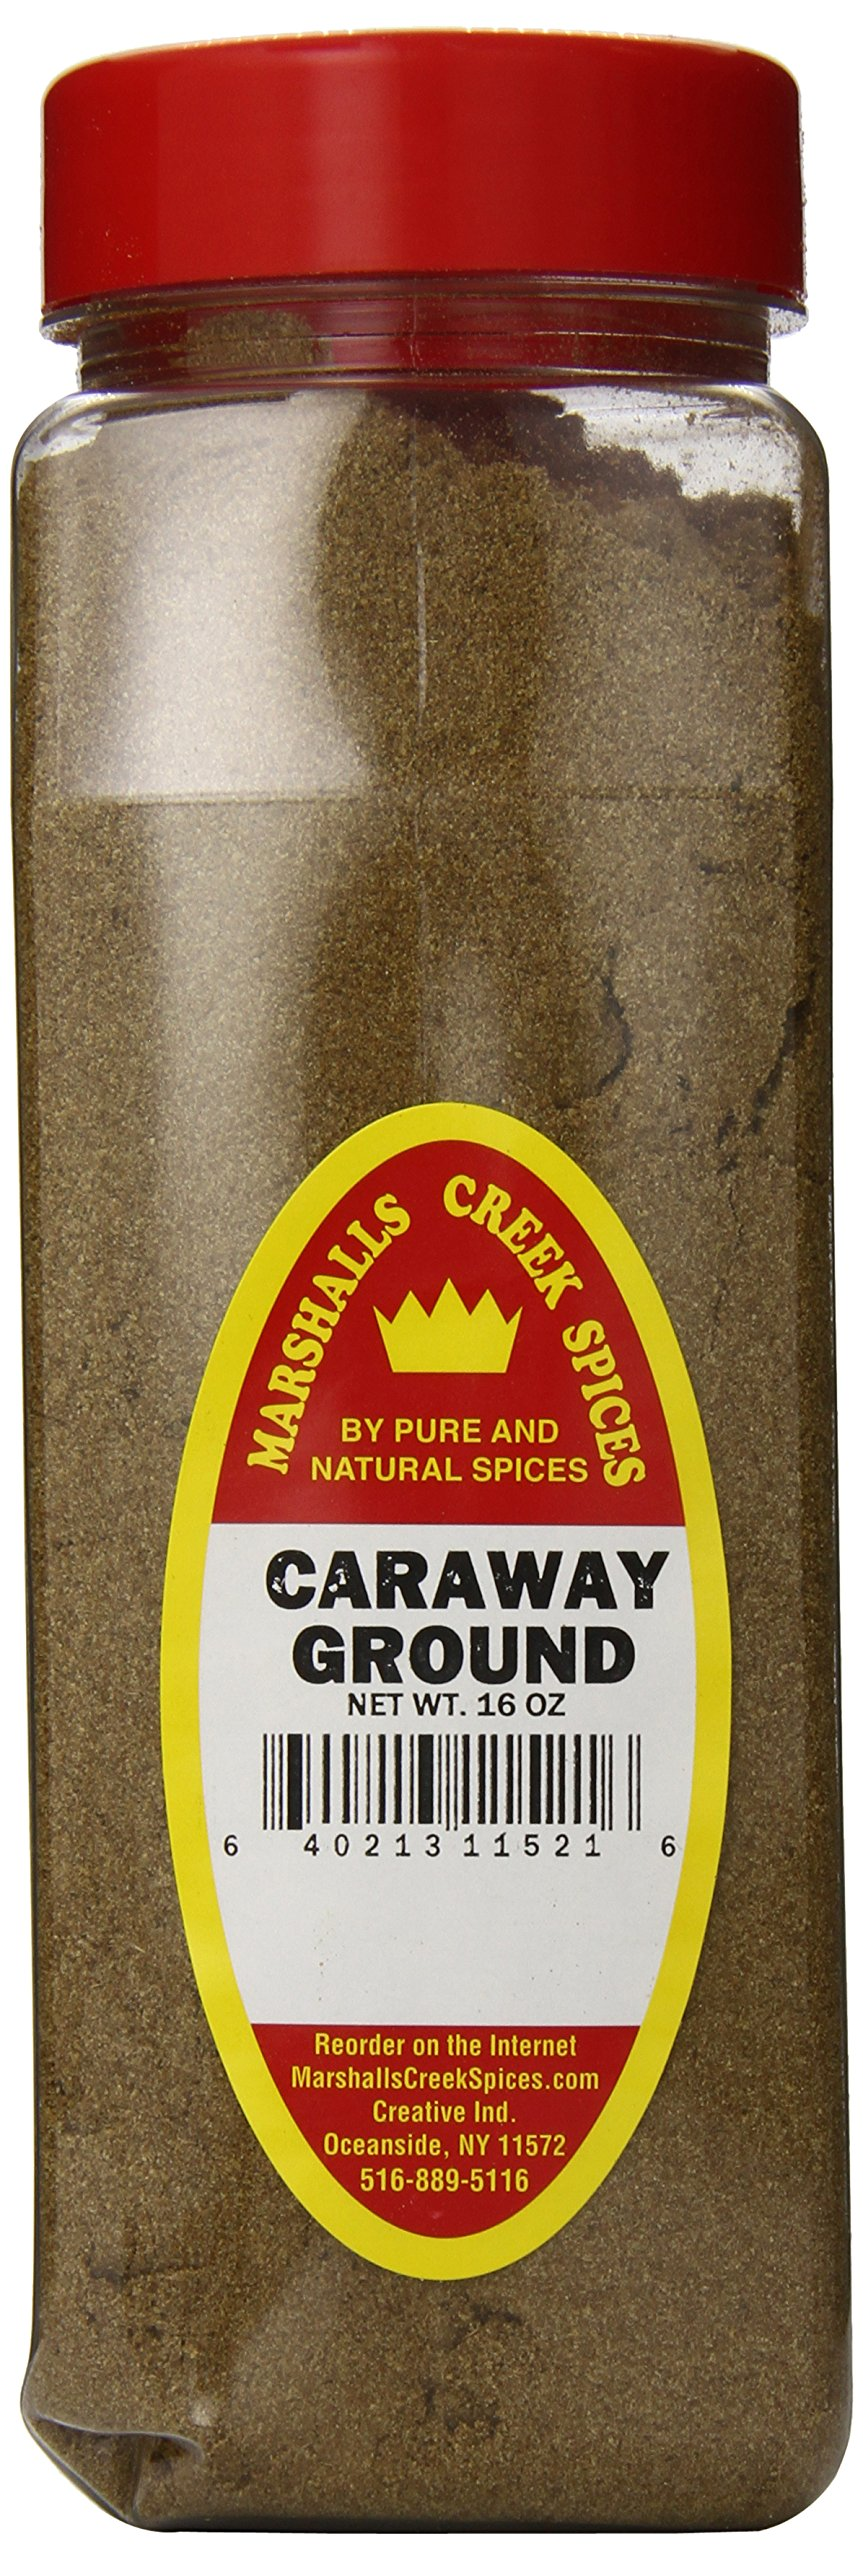 Marshalls Creek Spices Caraway Seed Seasoning, Ground, XL Size, 16 Ounce by Marshall's Creek Spices (Image #1)